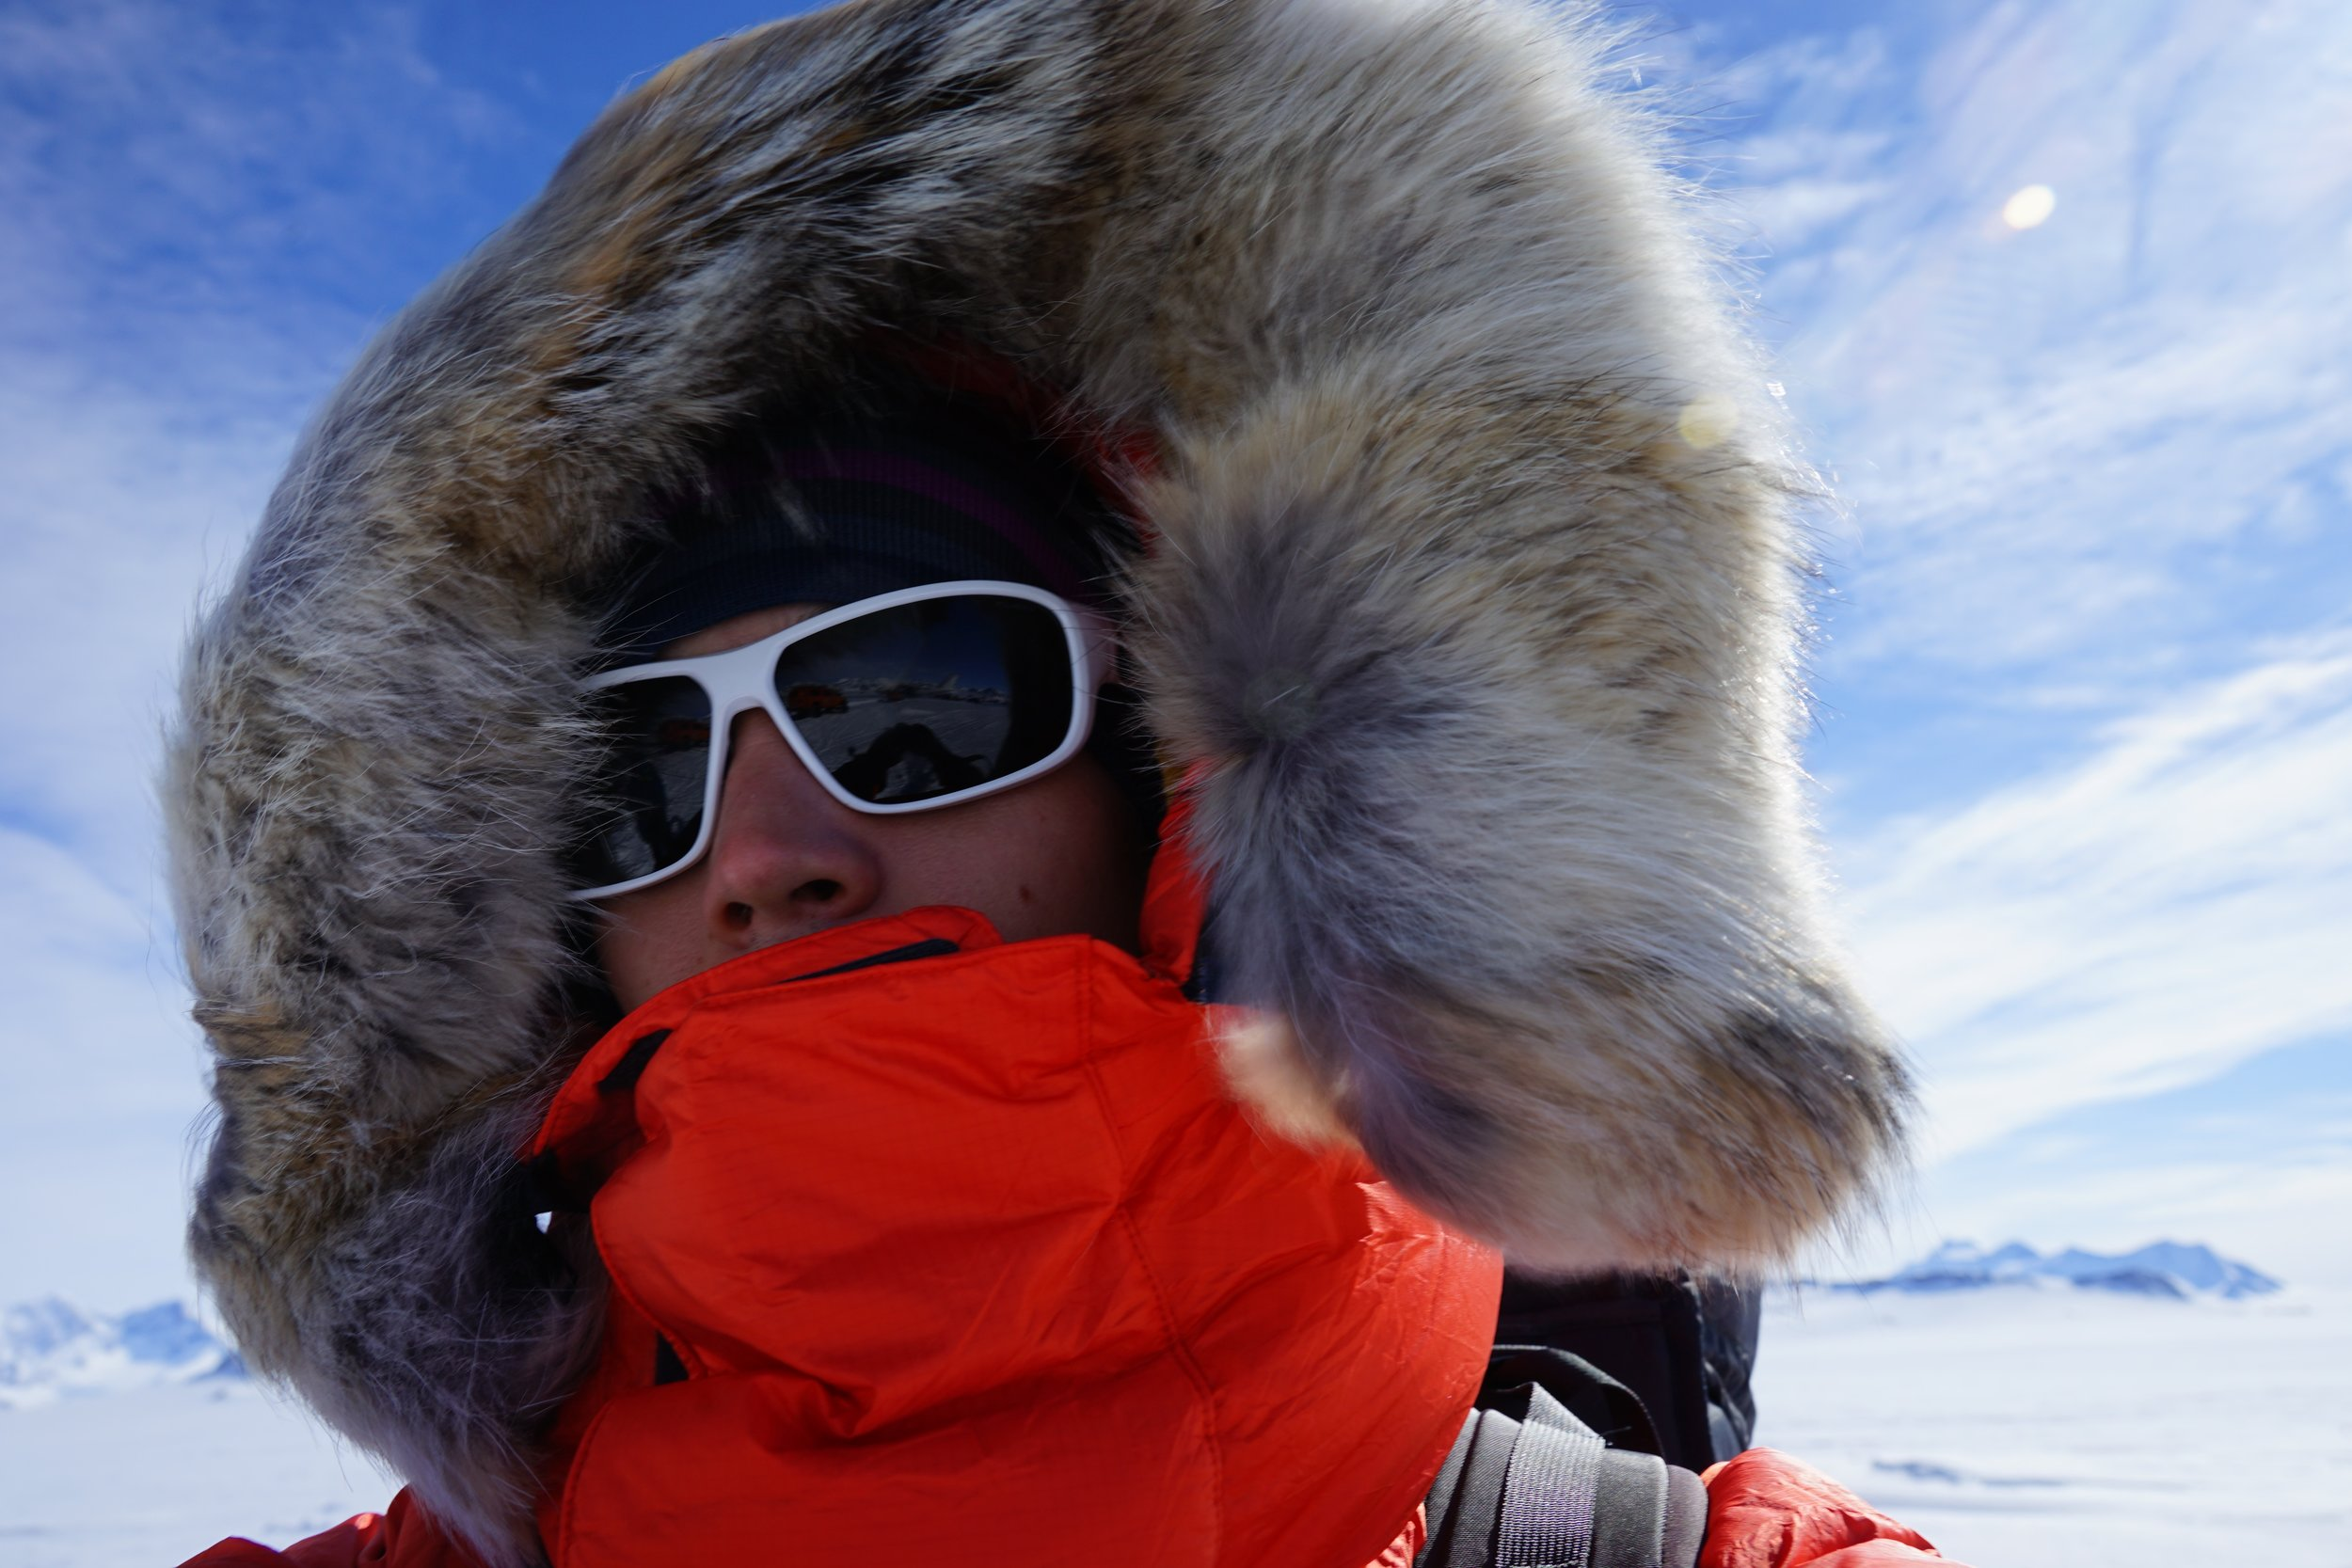 Bundled up Antartica style. Ready to depart for the South Pole in frigid temperatures.